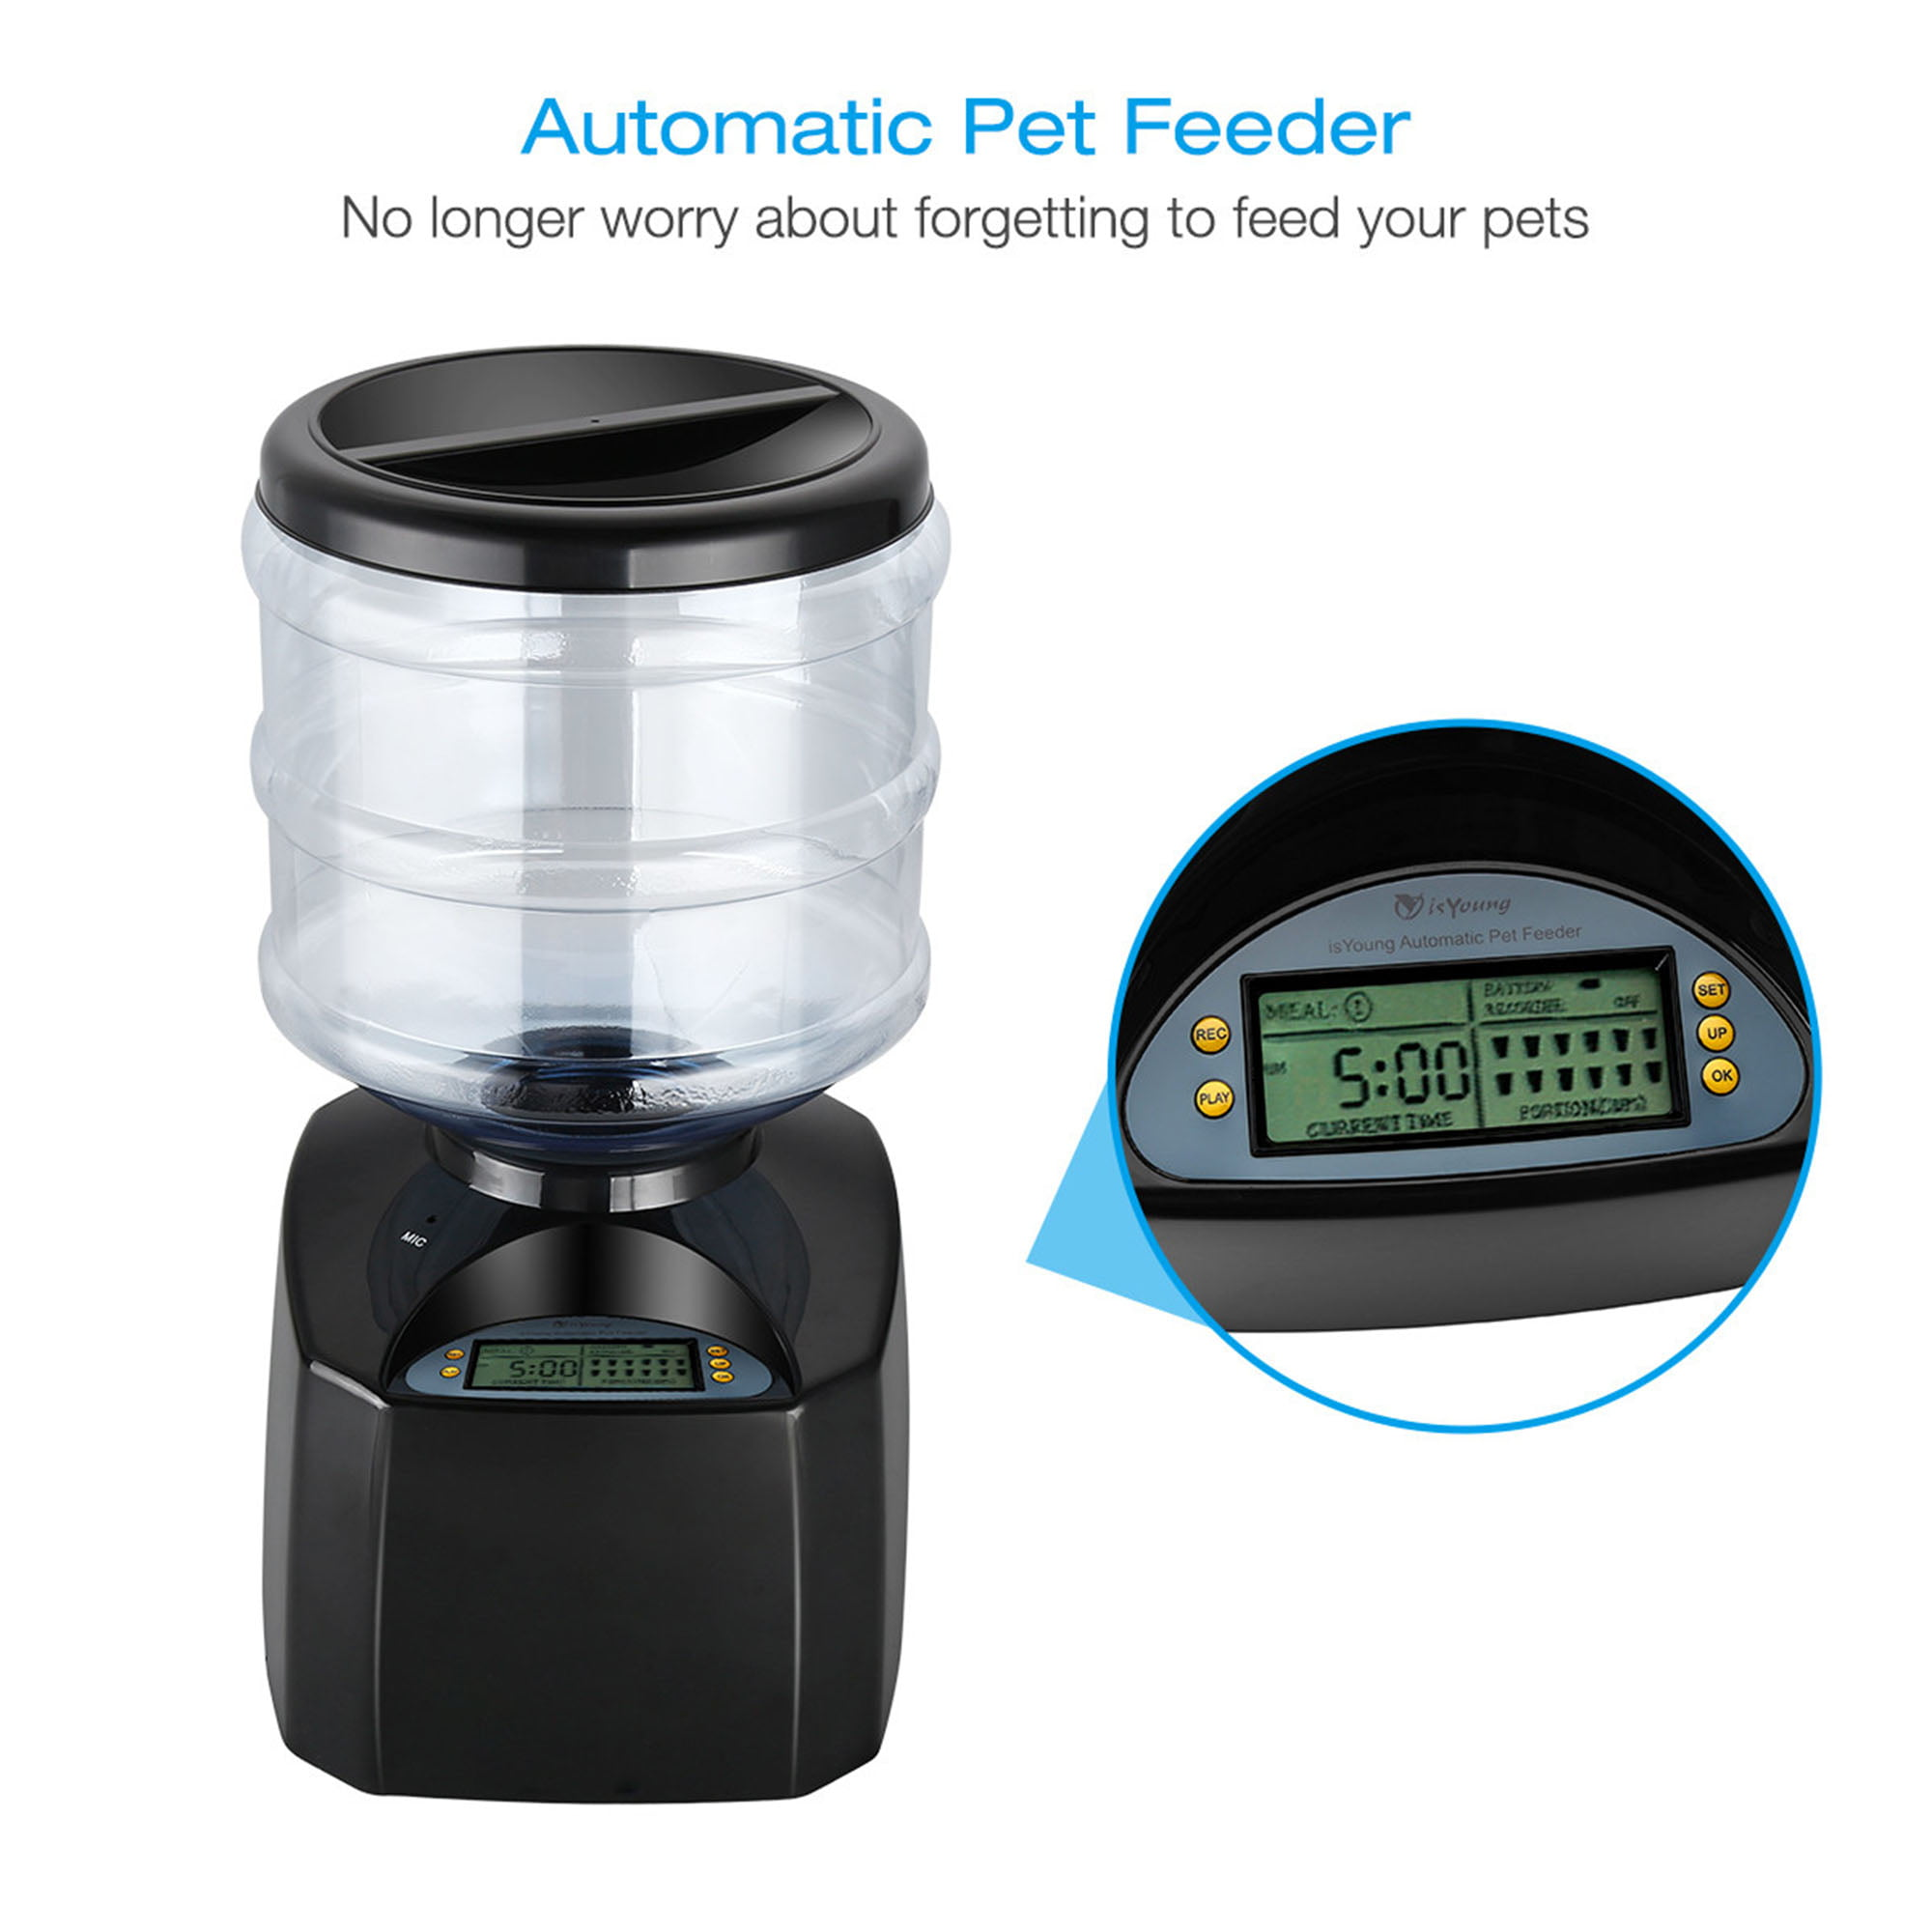 day exceptional automatic pet feeder using x cat com advance mota